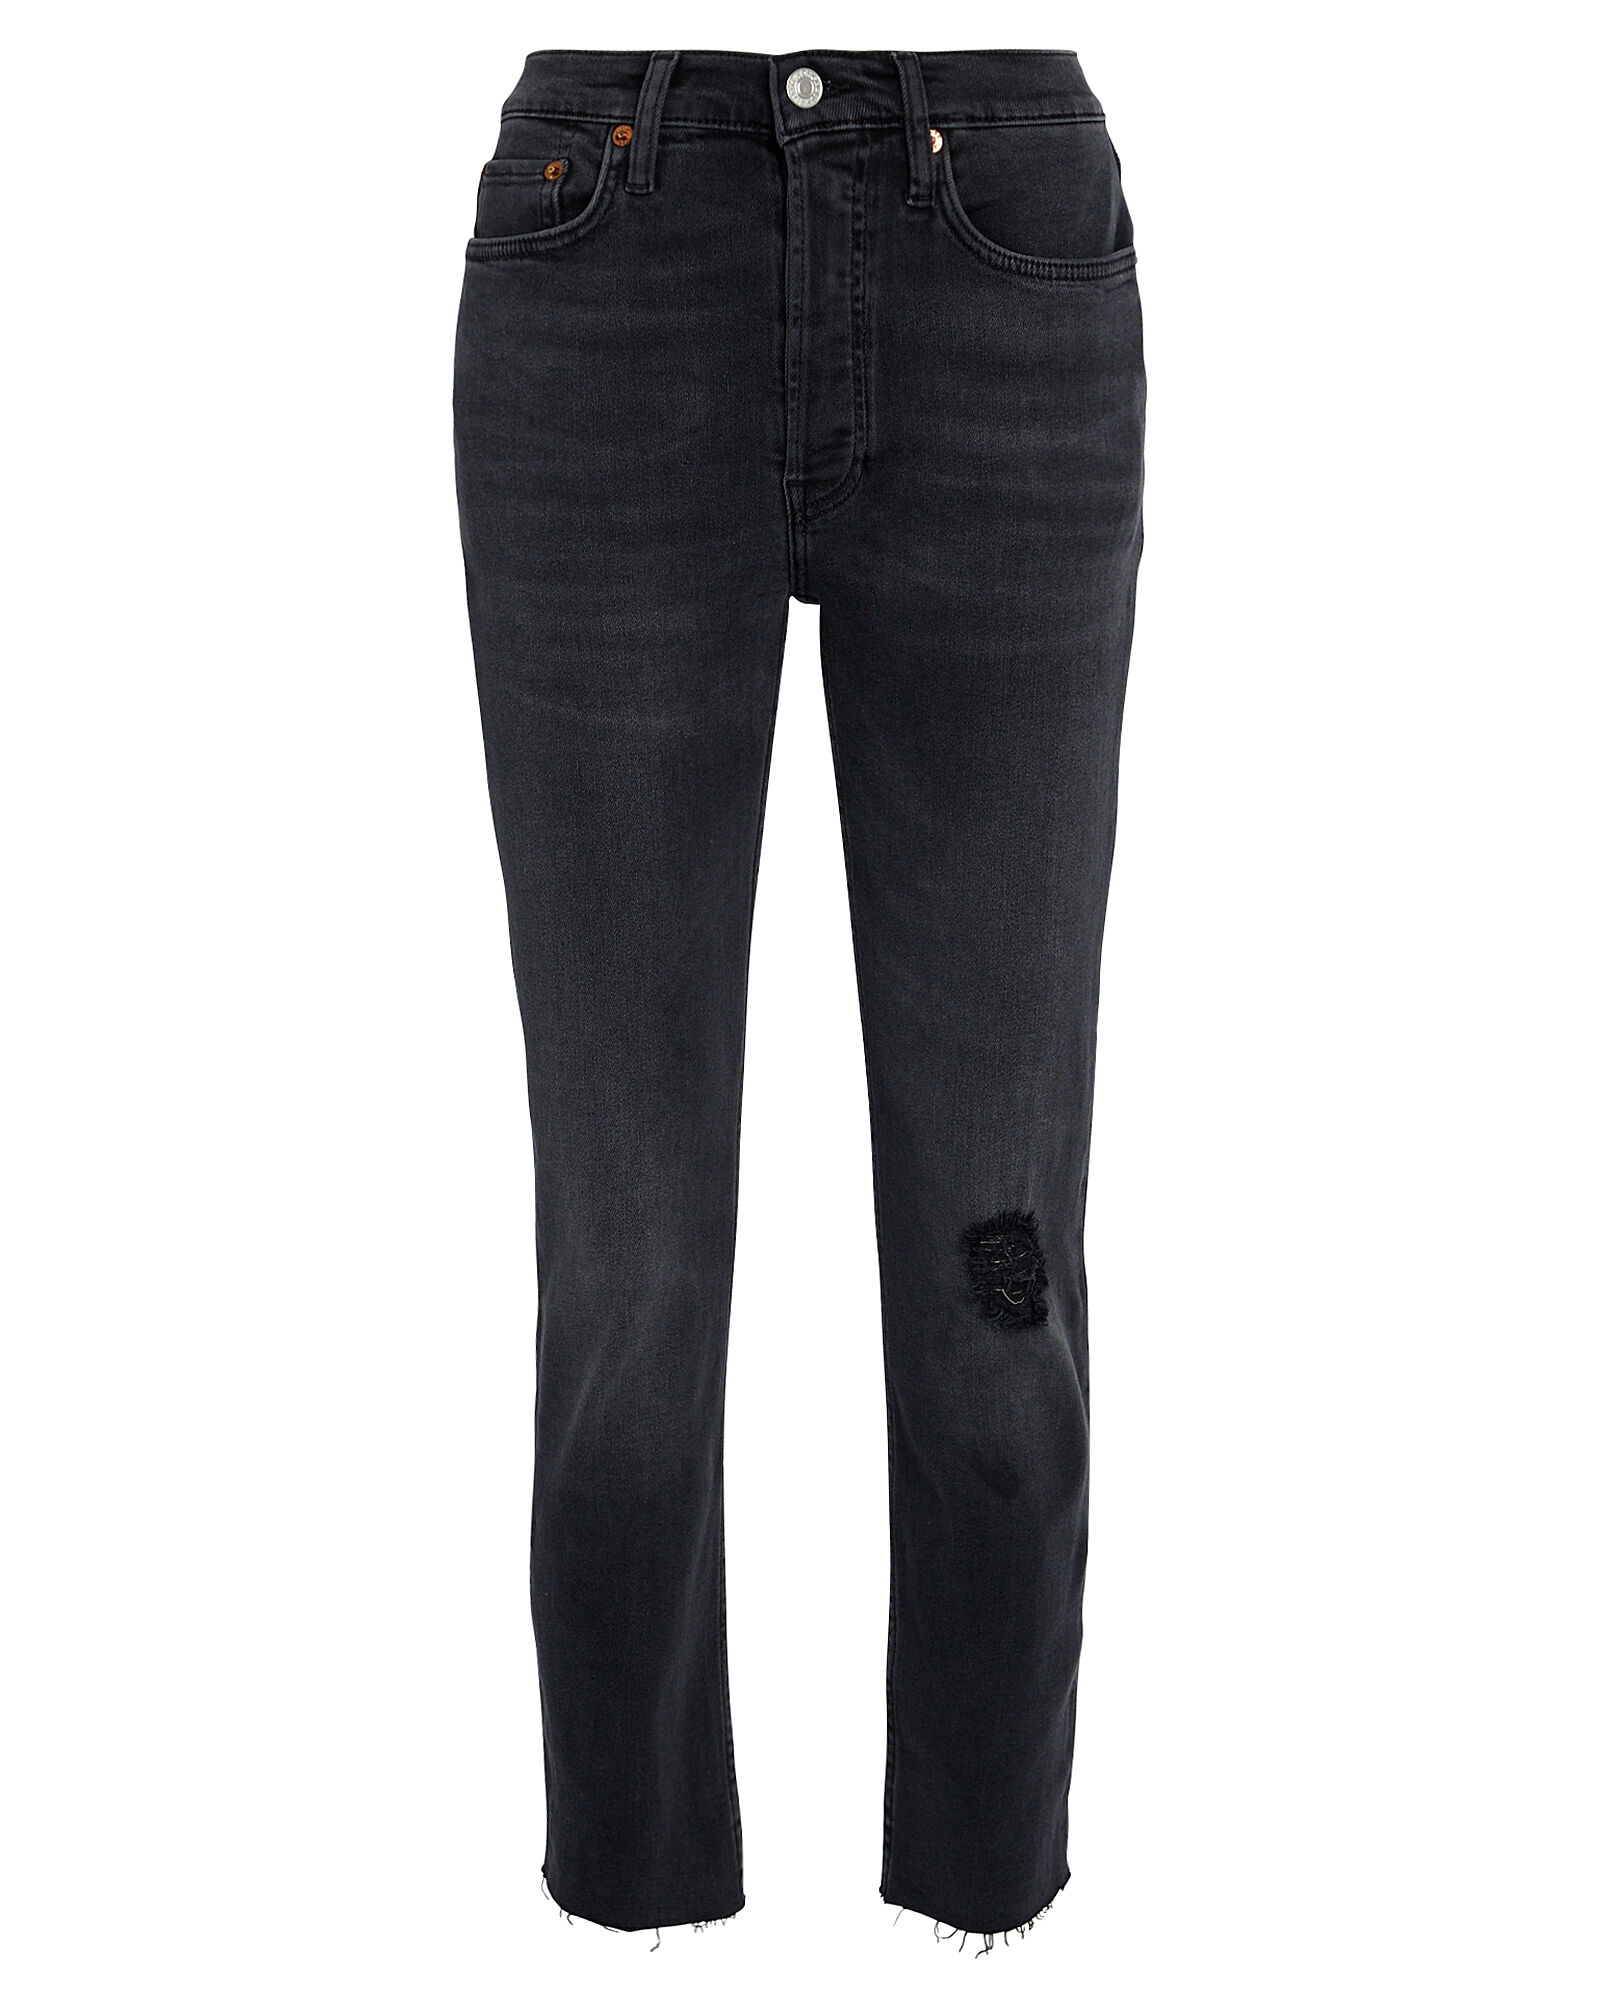 High-Rise Ankle Cropped Jeans, FADED BLACK DENIM, hi-res